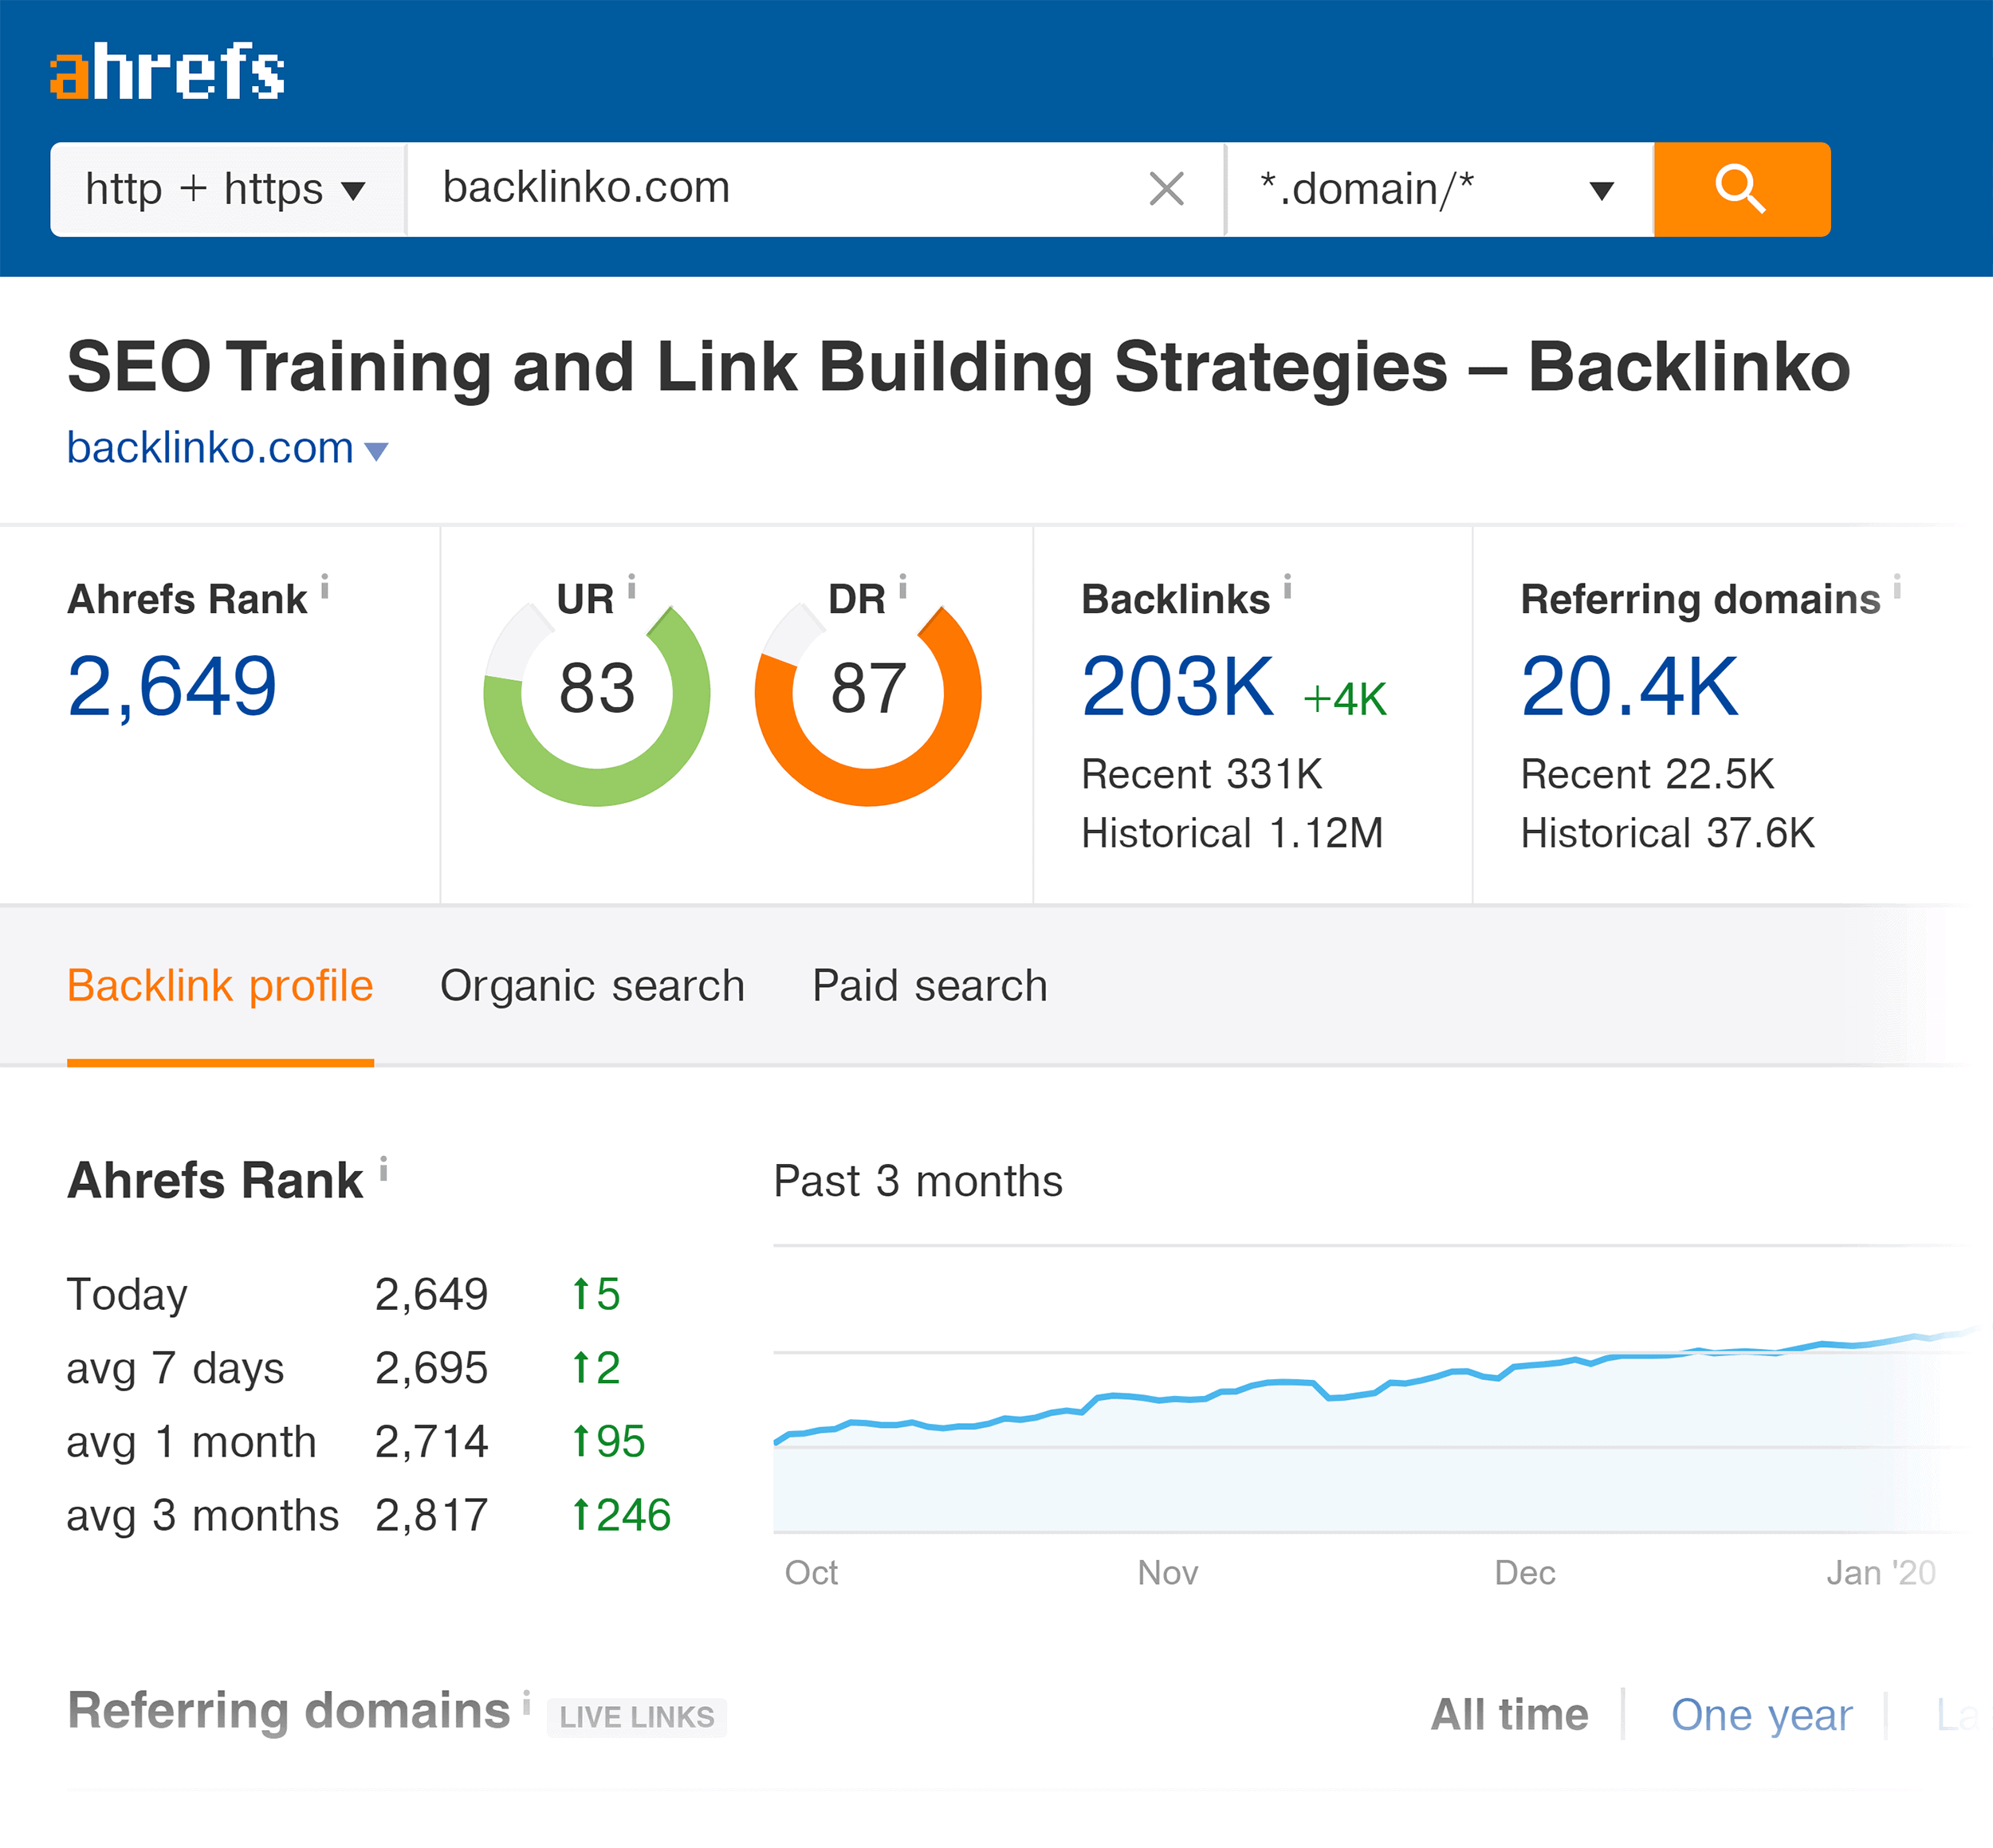 Ahrefs – Backlinko overview